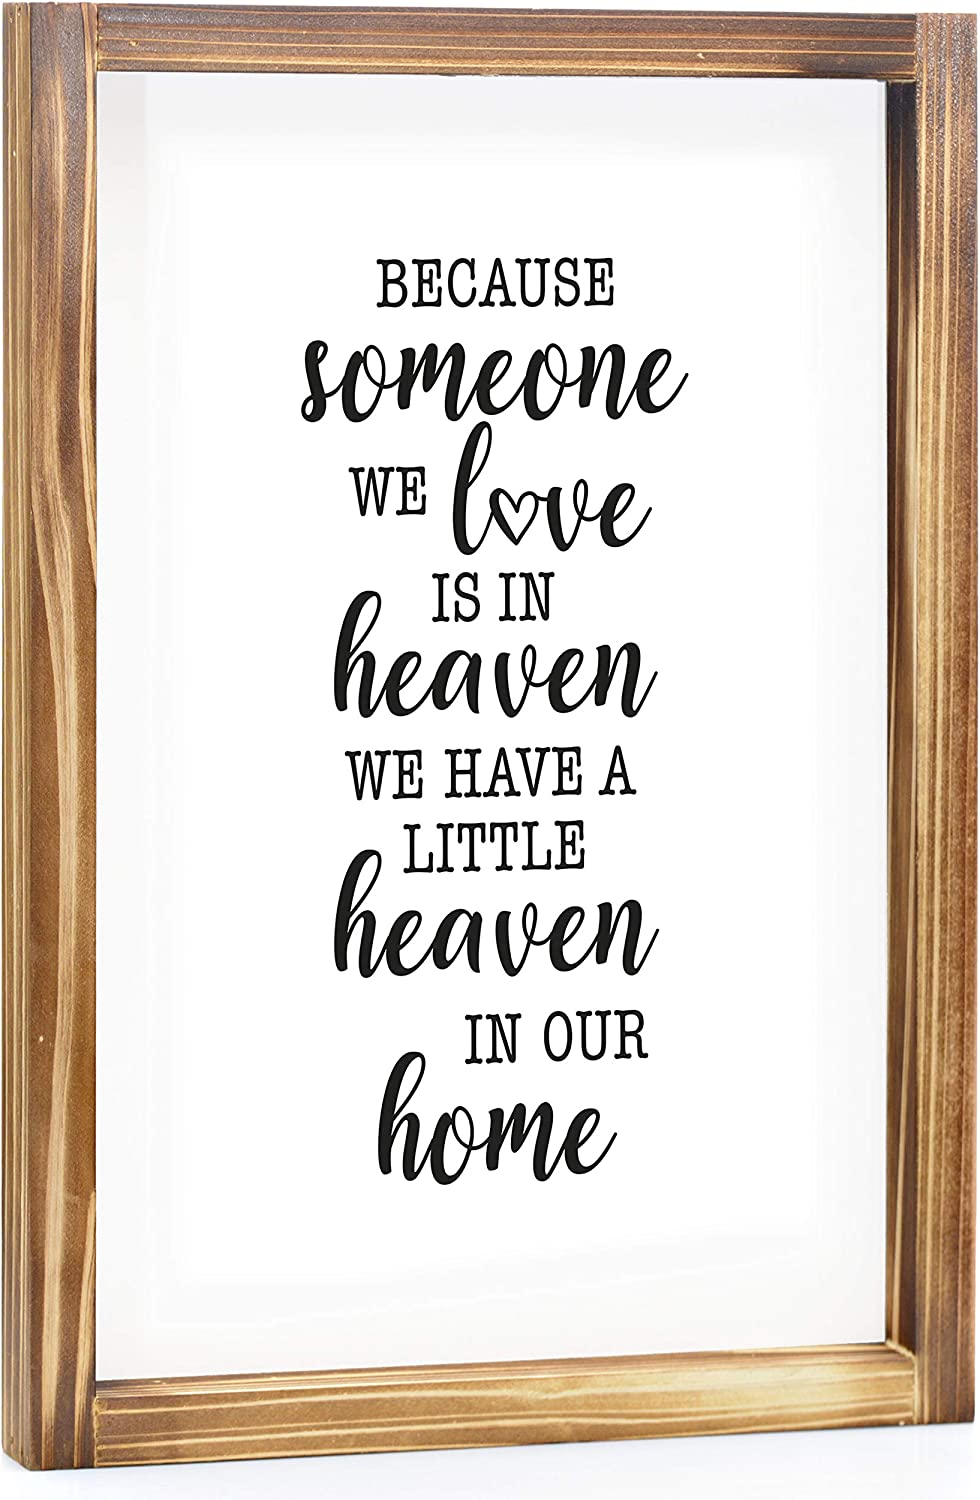 A Little Heaven In Our Home Sign - Rustic Farmhouse Decor For The Home Sign - Wall Decorations For Living Room, Modern Farmhouse Wall Decor, Rustic Home Decor With Solid Wood Frame - 11x16 Inch